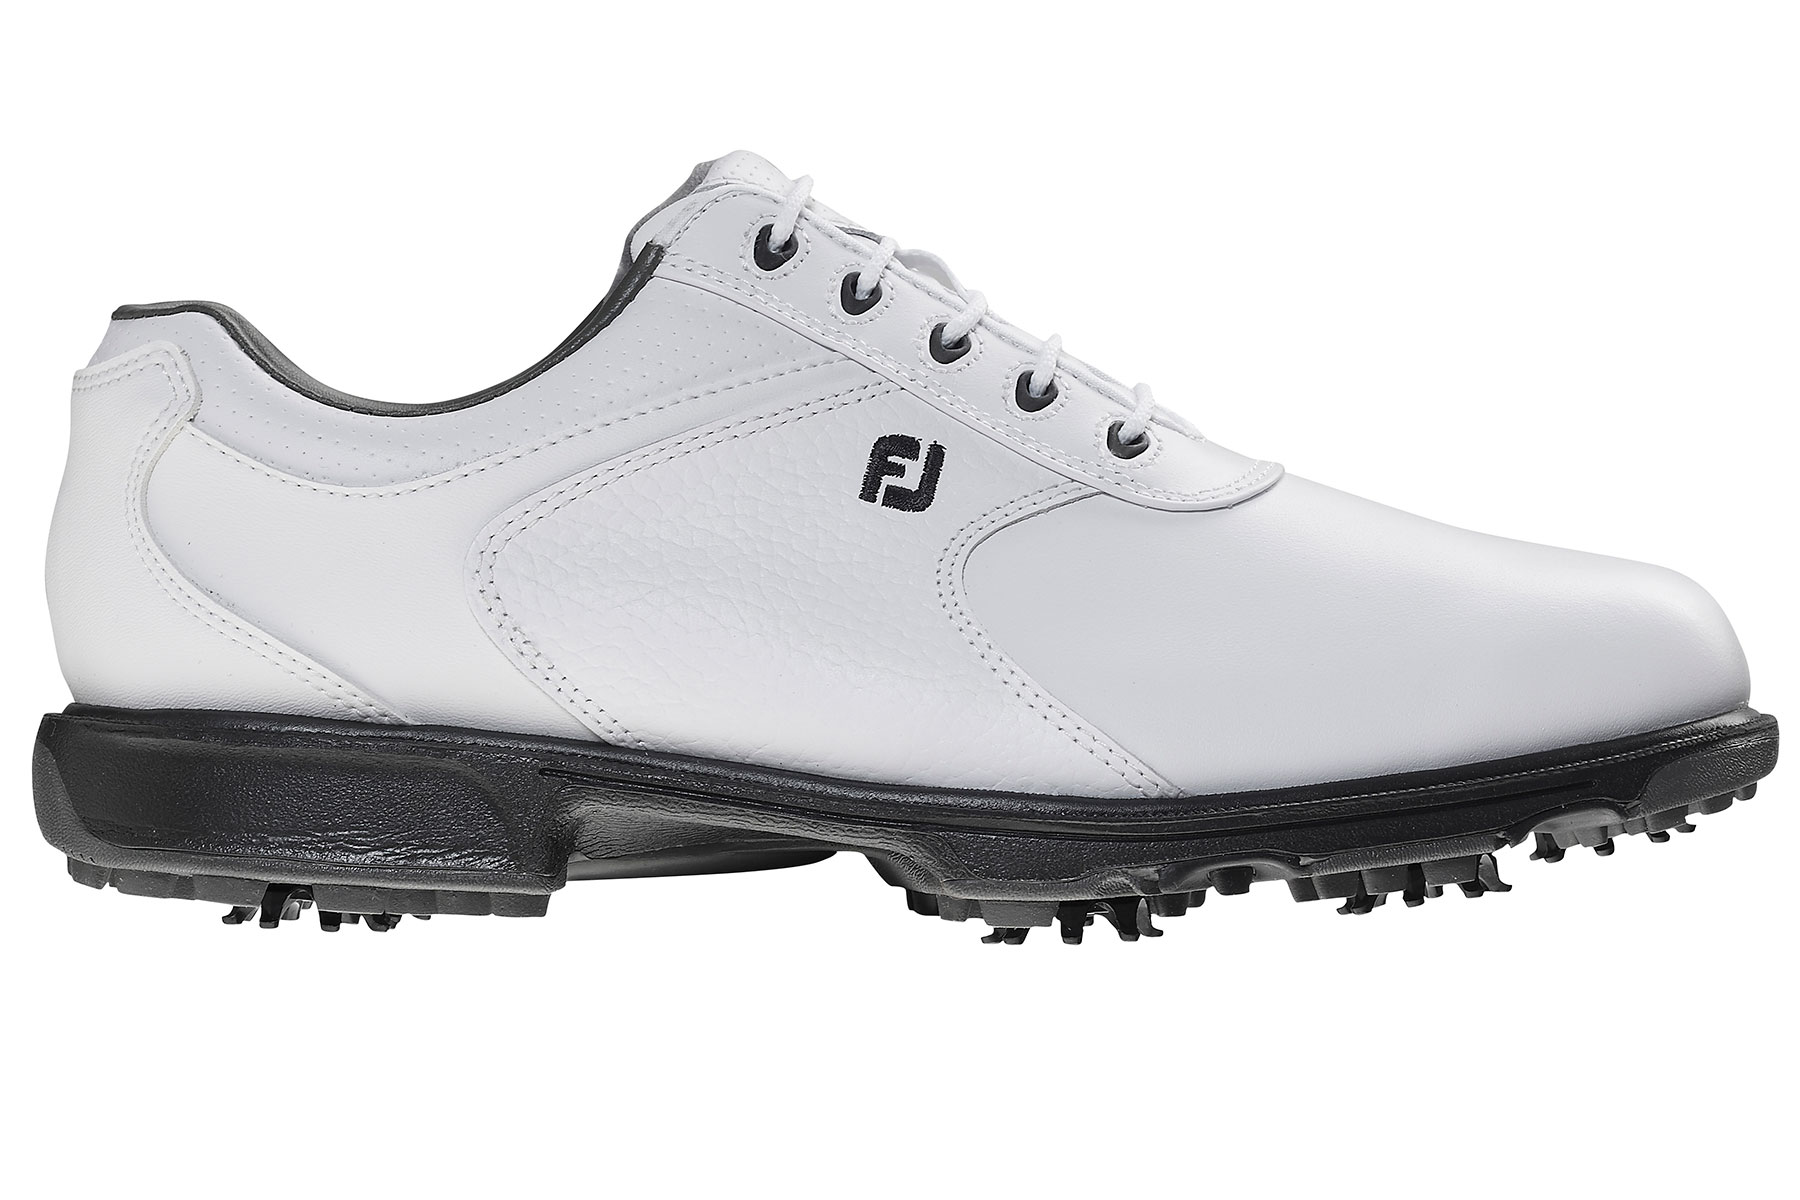 Footjoy Aql Golf Shoes Uk